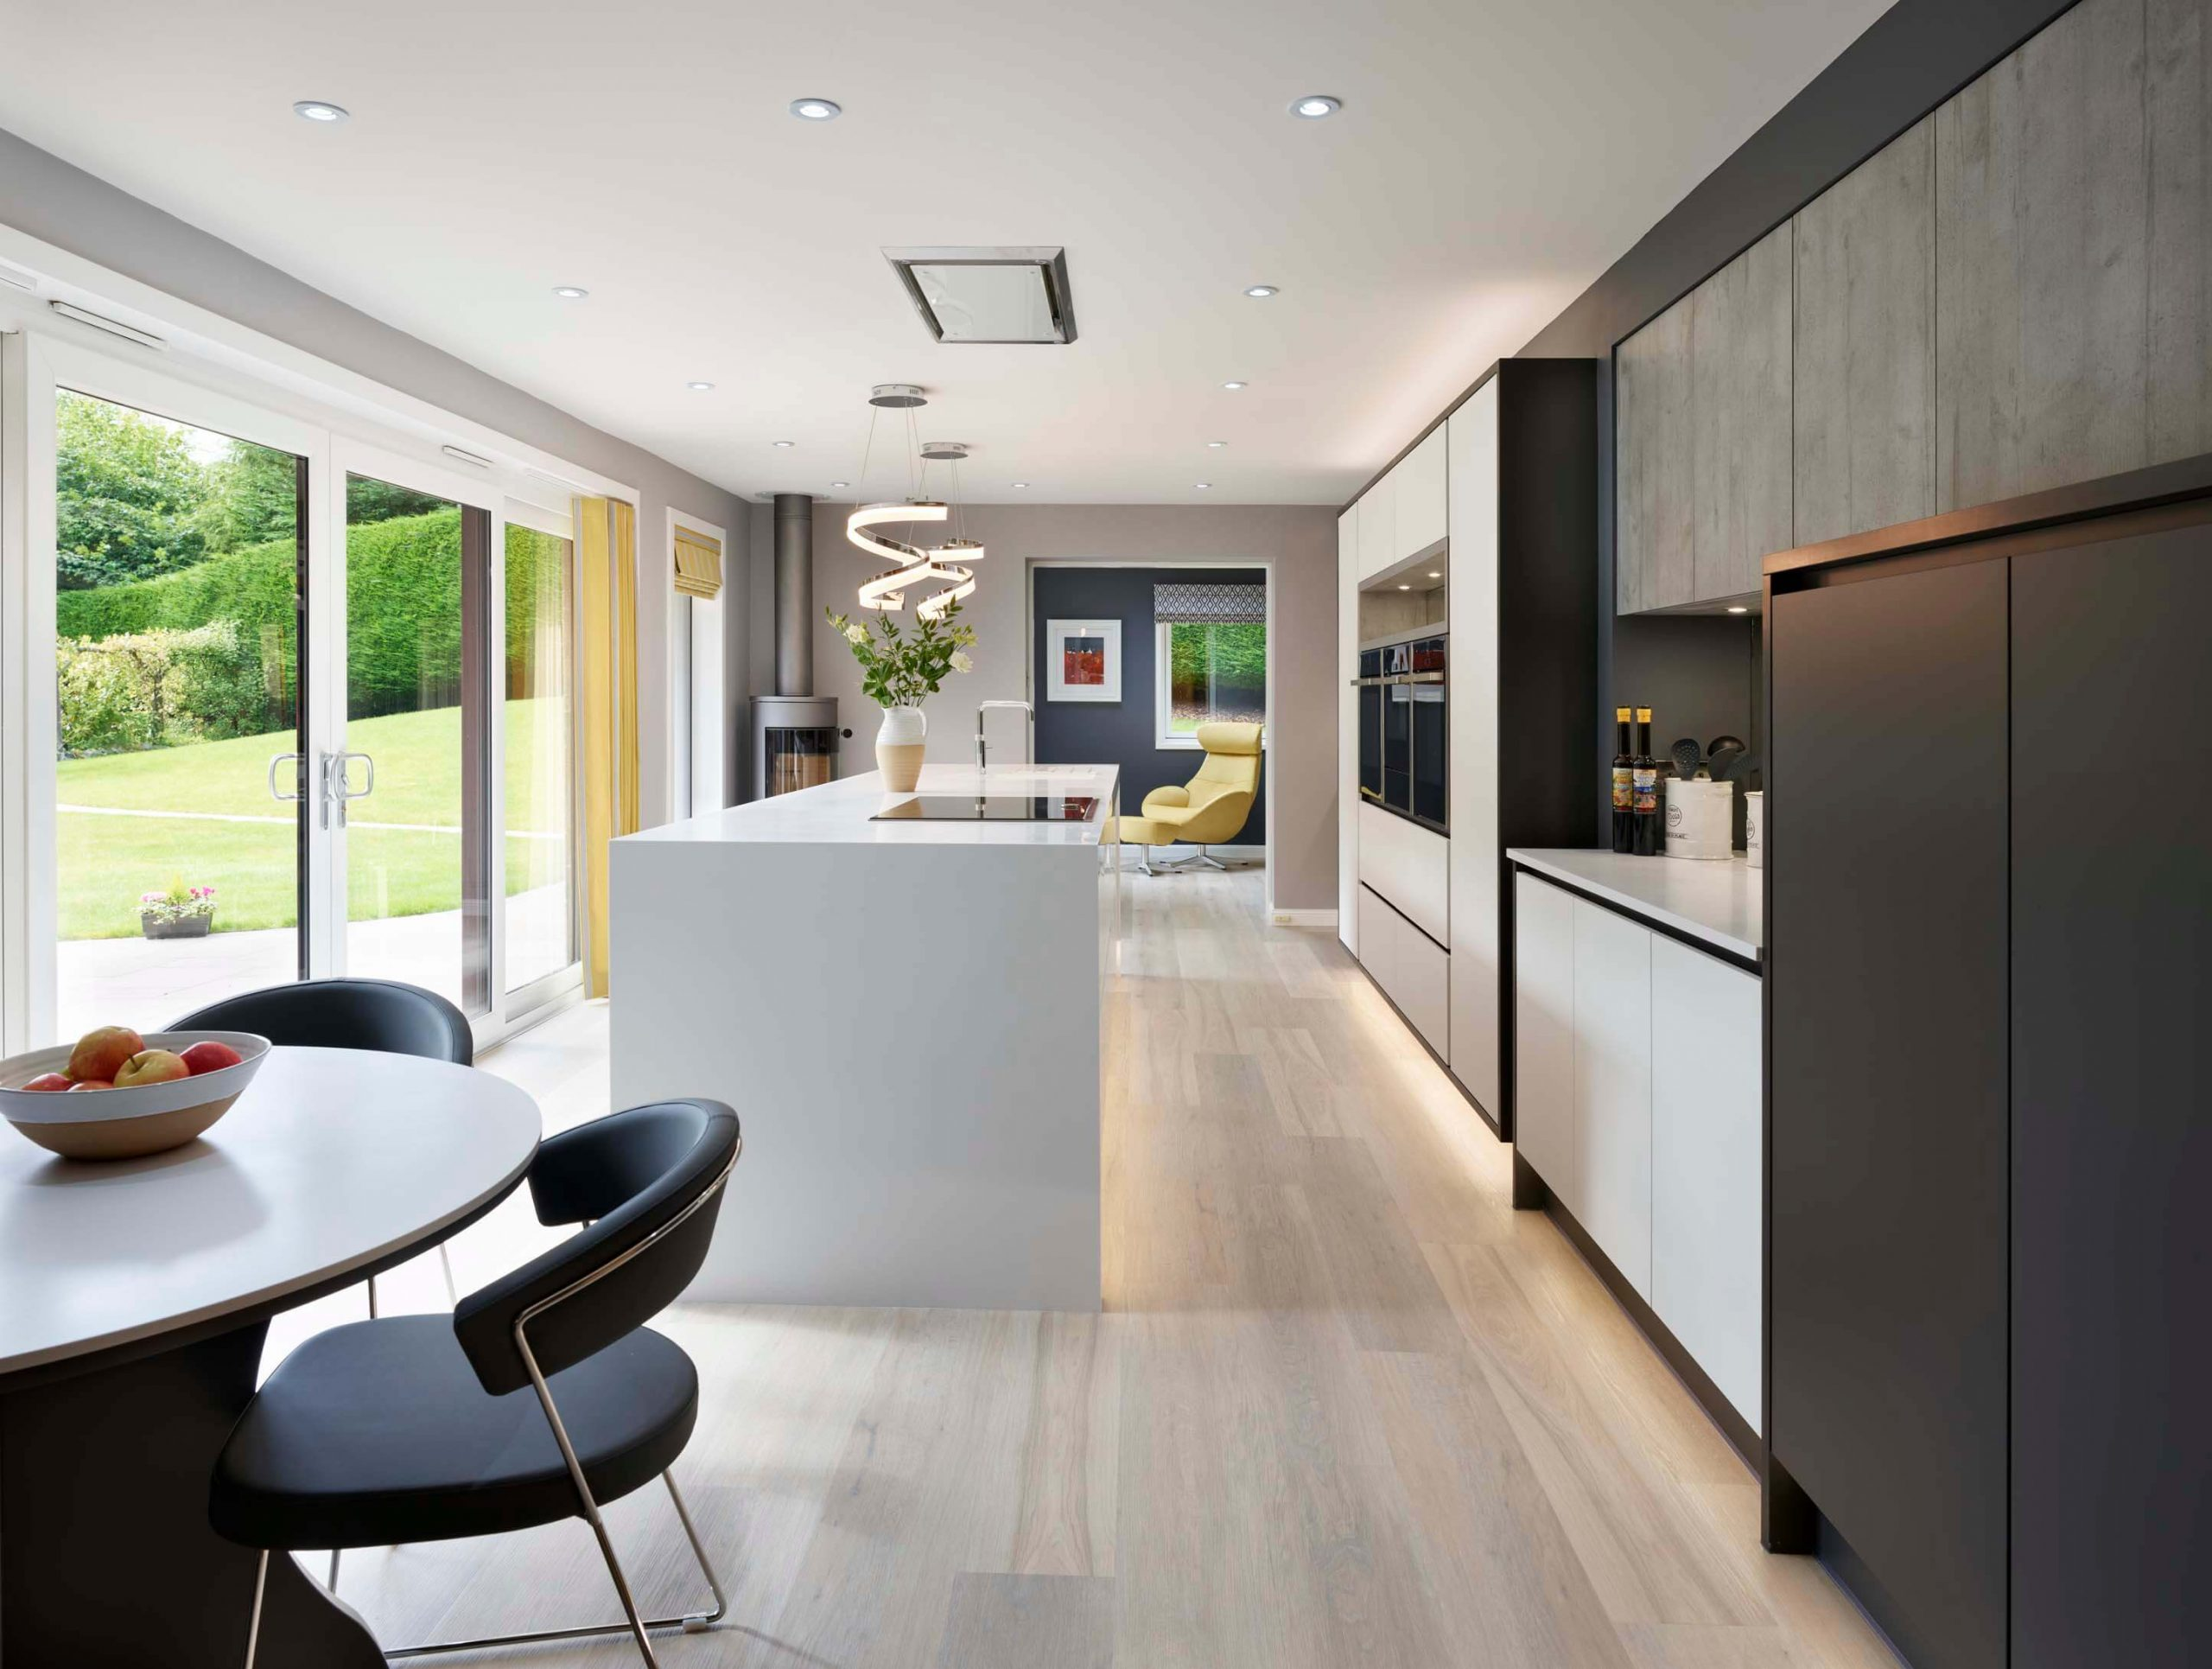 Modern Handleless Kitchen With An Industrial Style (3)